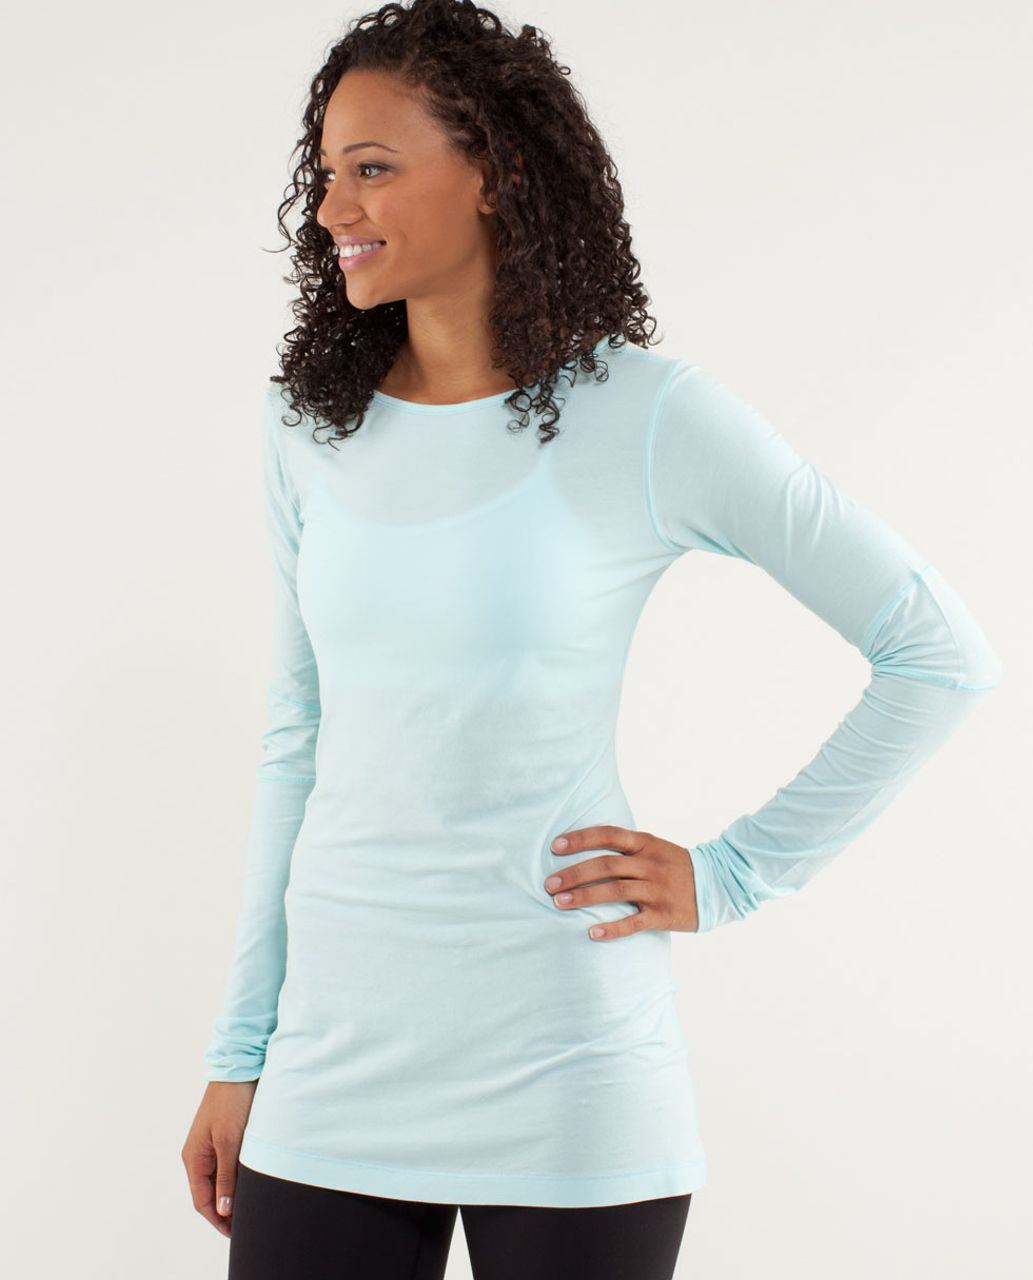 Lululemon Devotion Long Sleeve Tee - Aquamarine